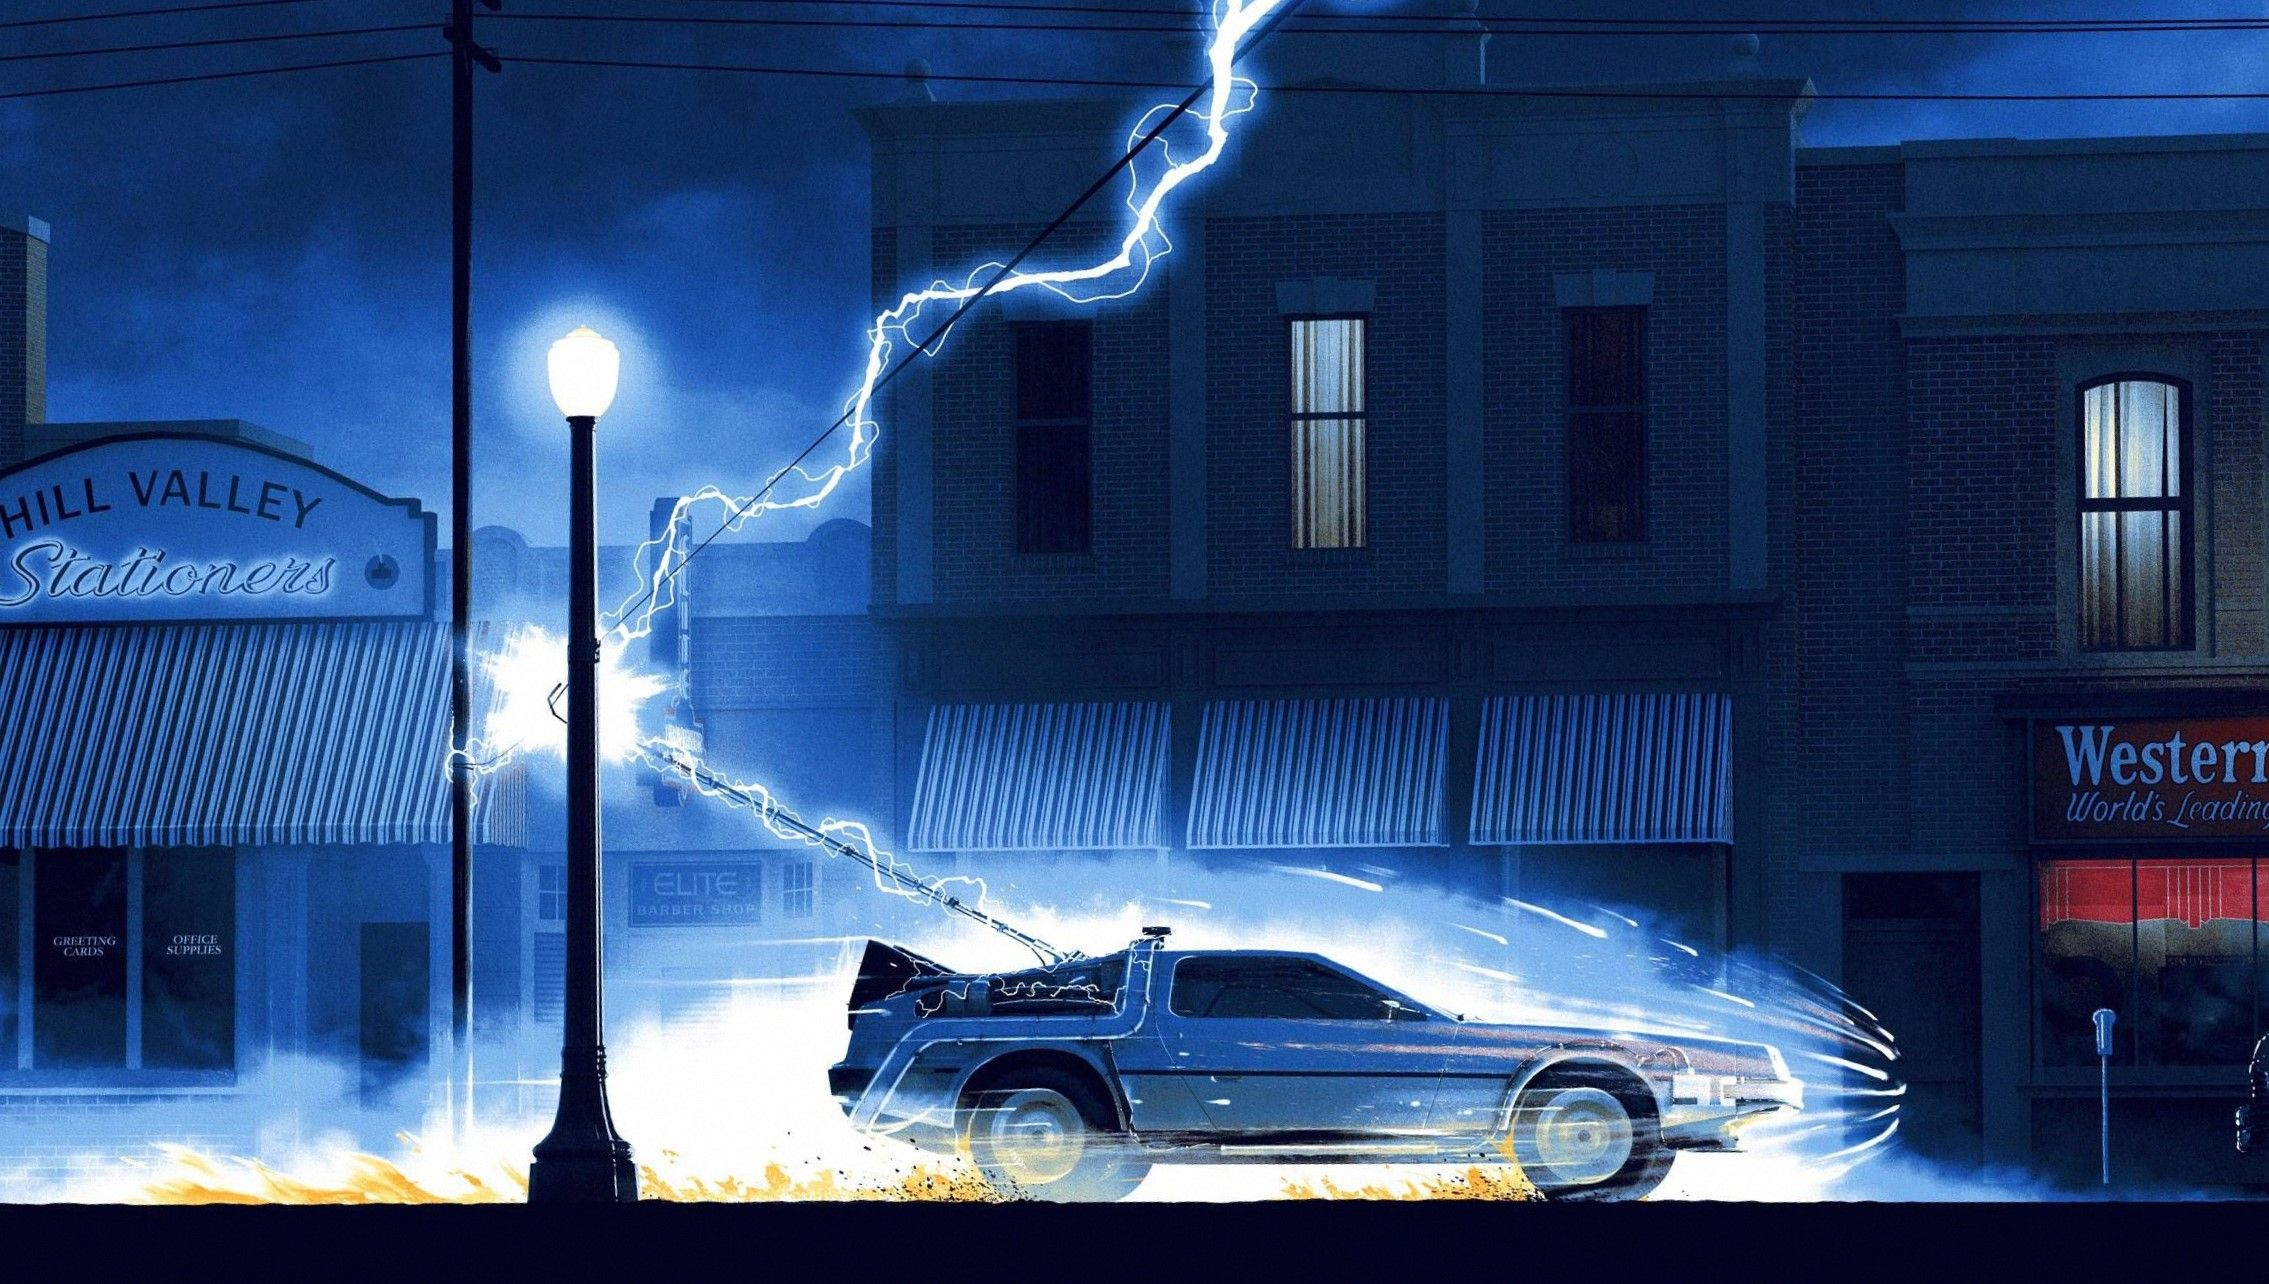 Back-to-the-Future-1985-Year-movies-time-machine-artwork-DeLorean-car-lightning-vehicle-1711853.jpg